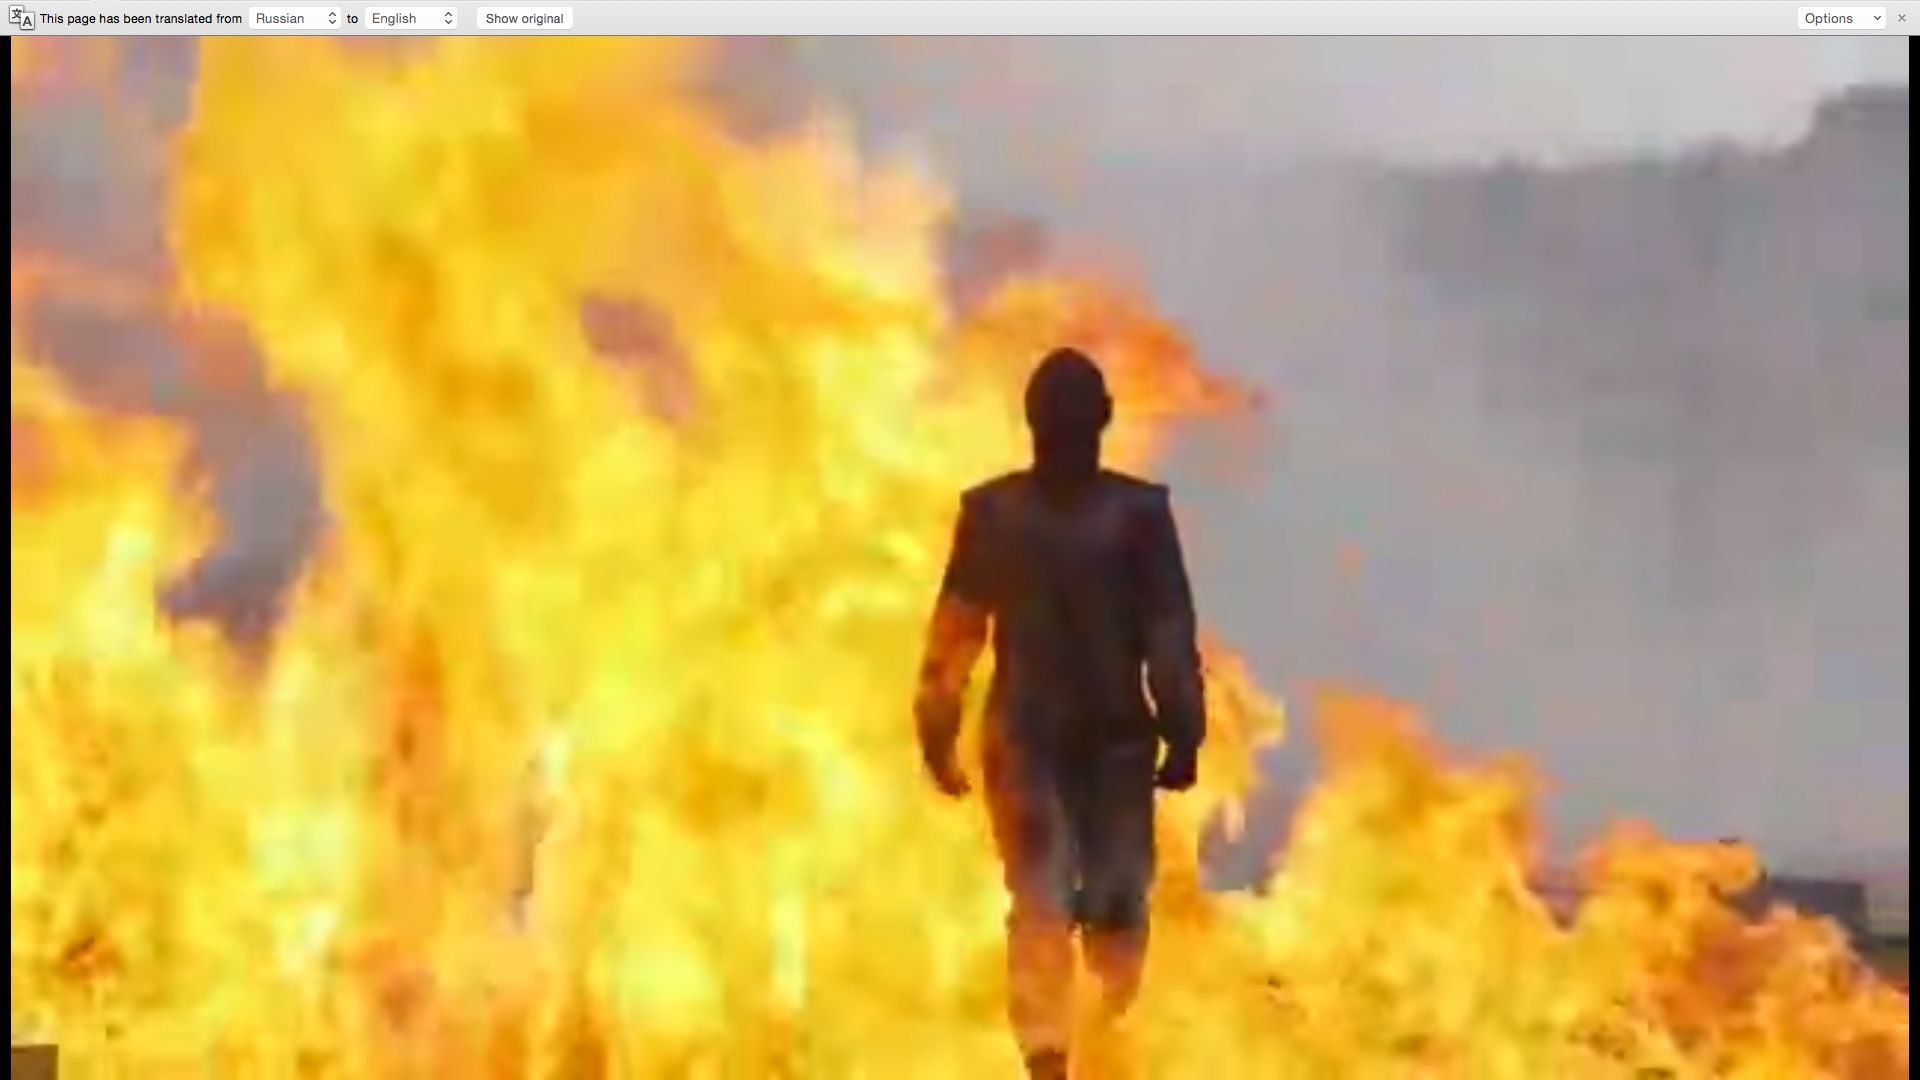 A woman wearing a fire-proof suit is seen walking through a field of explosives.